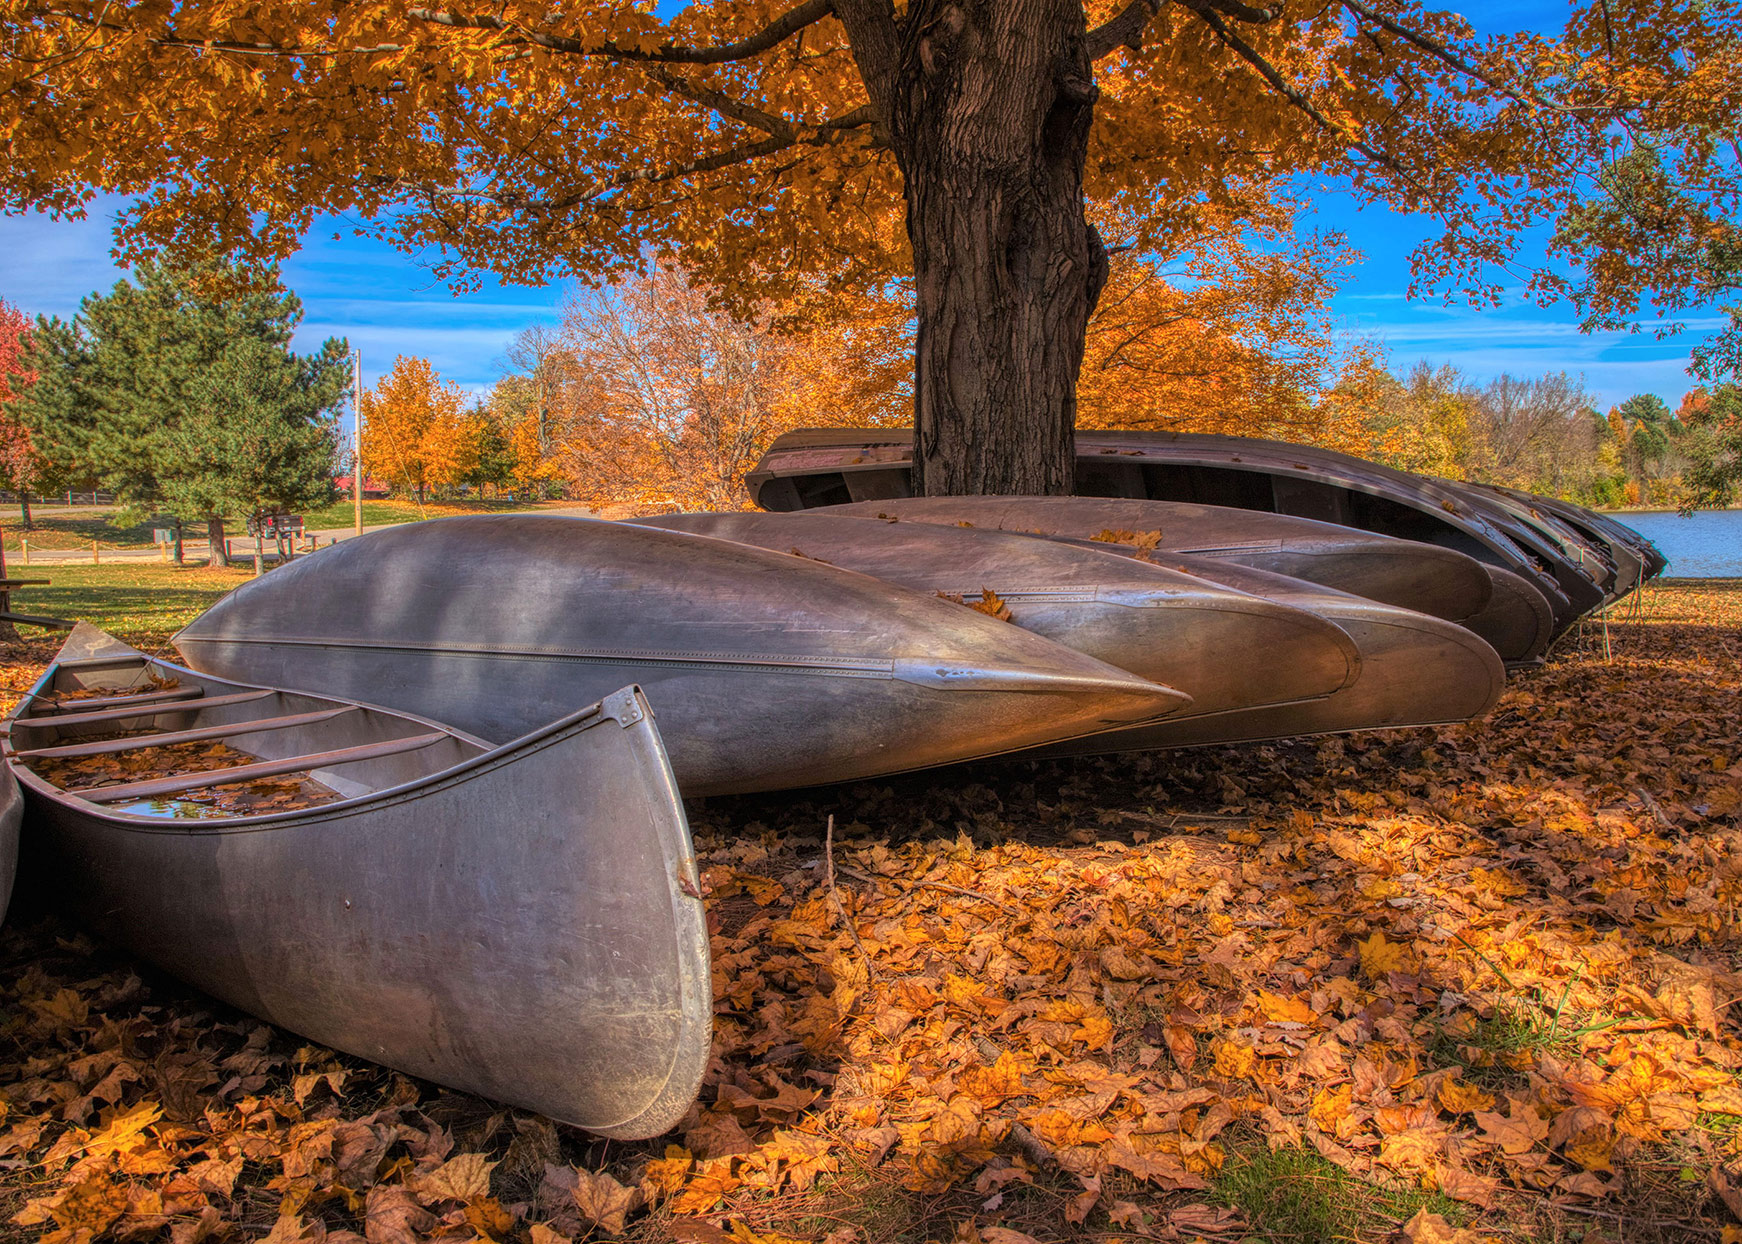 canoes in Buckhorn, Kentucky in the fall